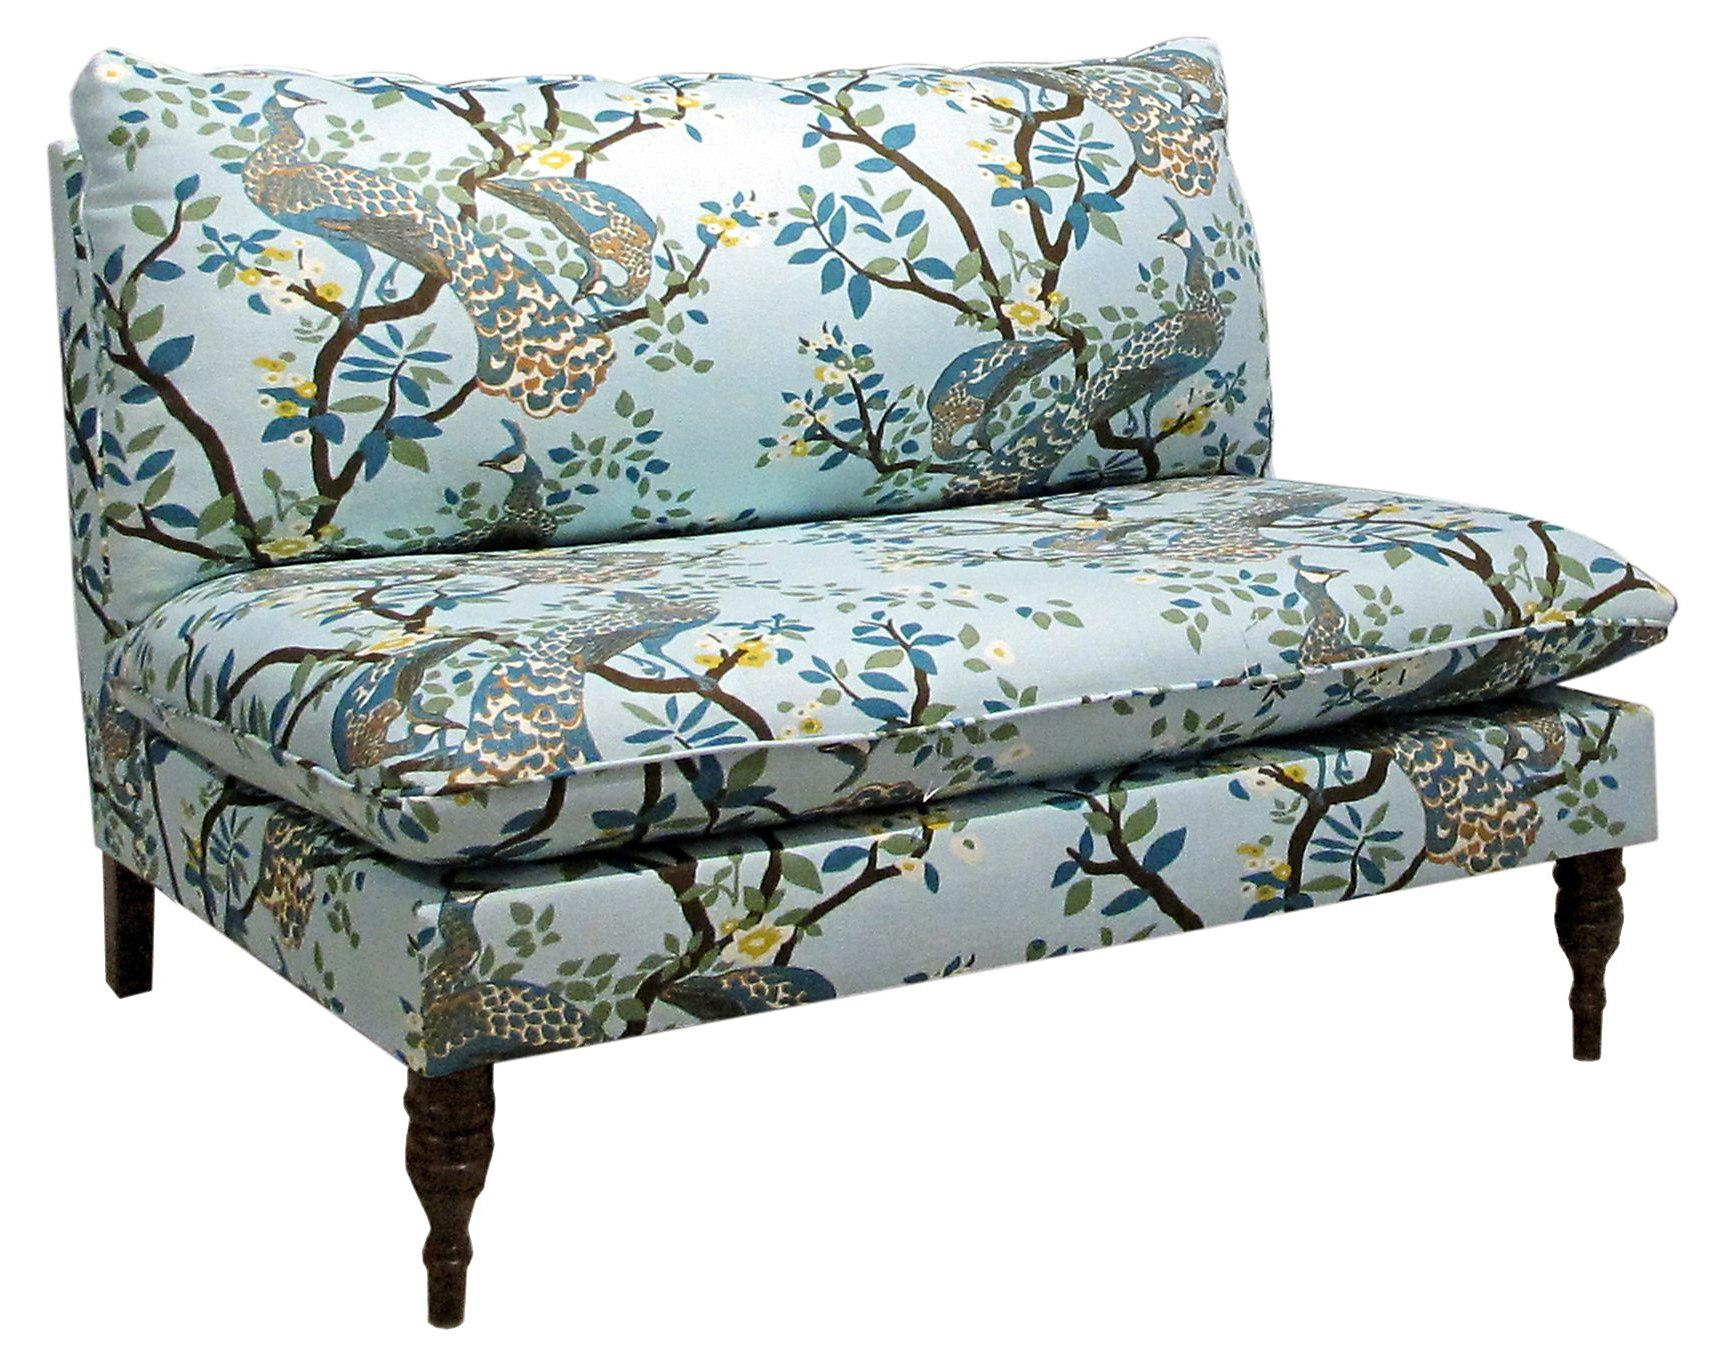 Furniture: Comfortable Modern Sofa Design With Cozy Armless Settee Inside Small Armless Sofa (Image 7 of 20)